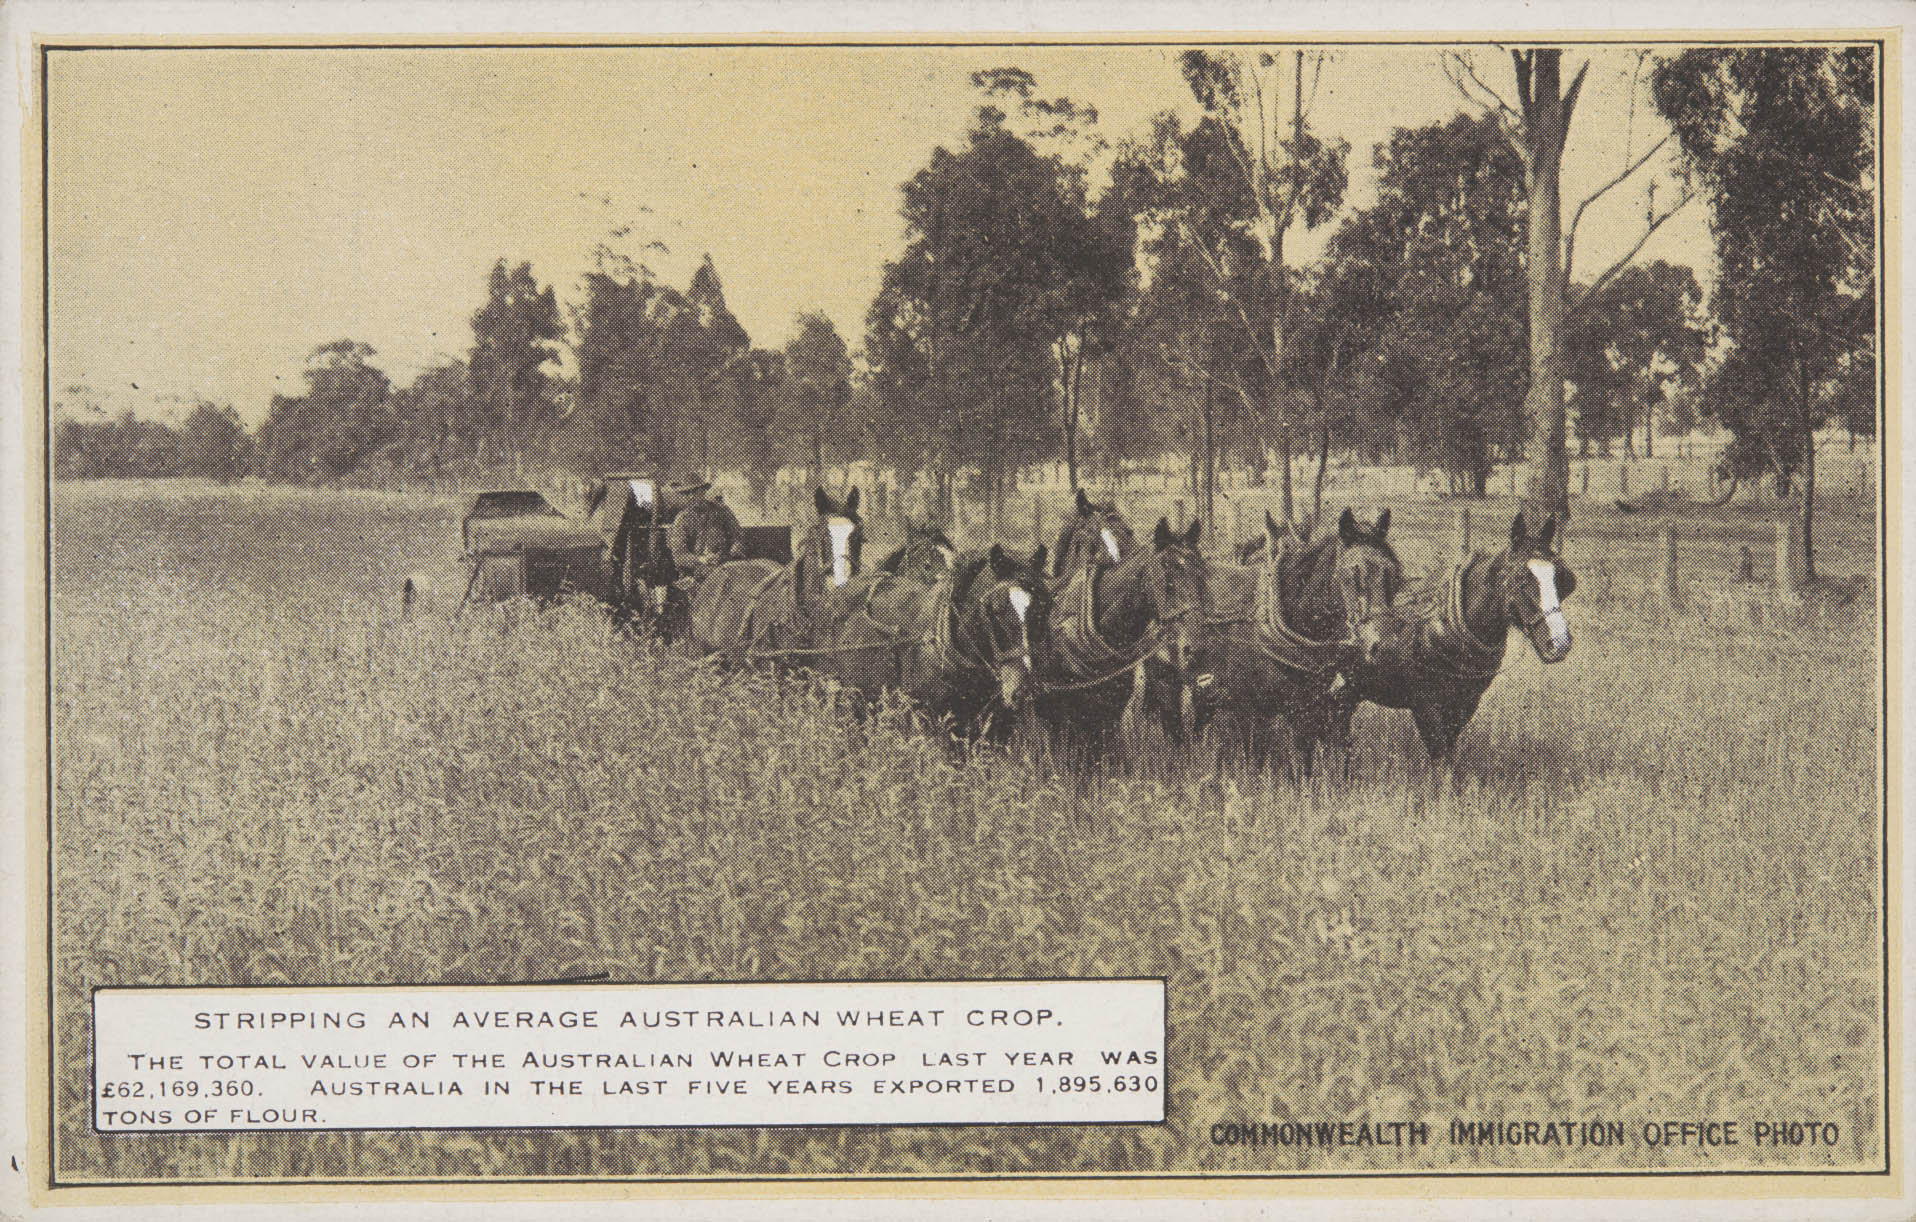 Wheat being stripped (a stripper was a type of harvesting machine used in Australia in the late 1800s and early 1900s).